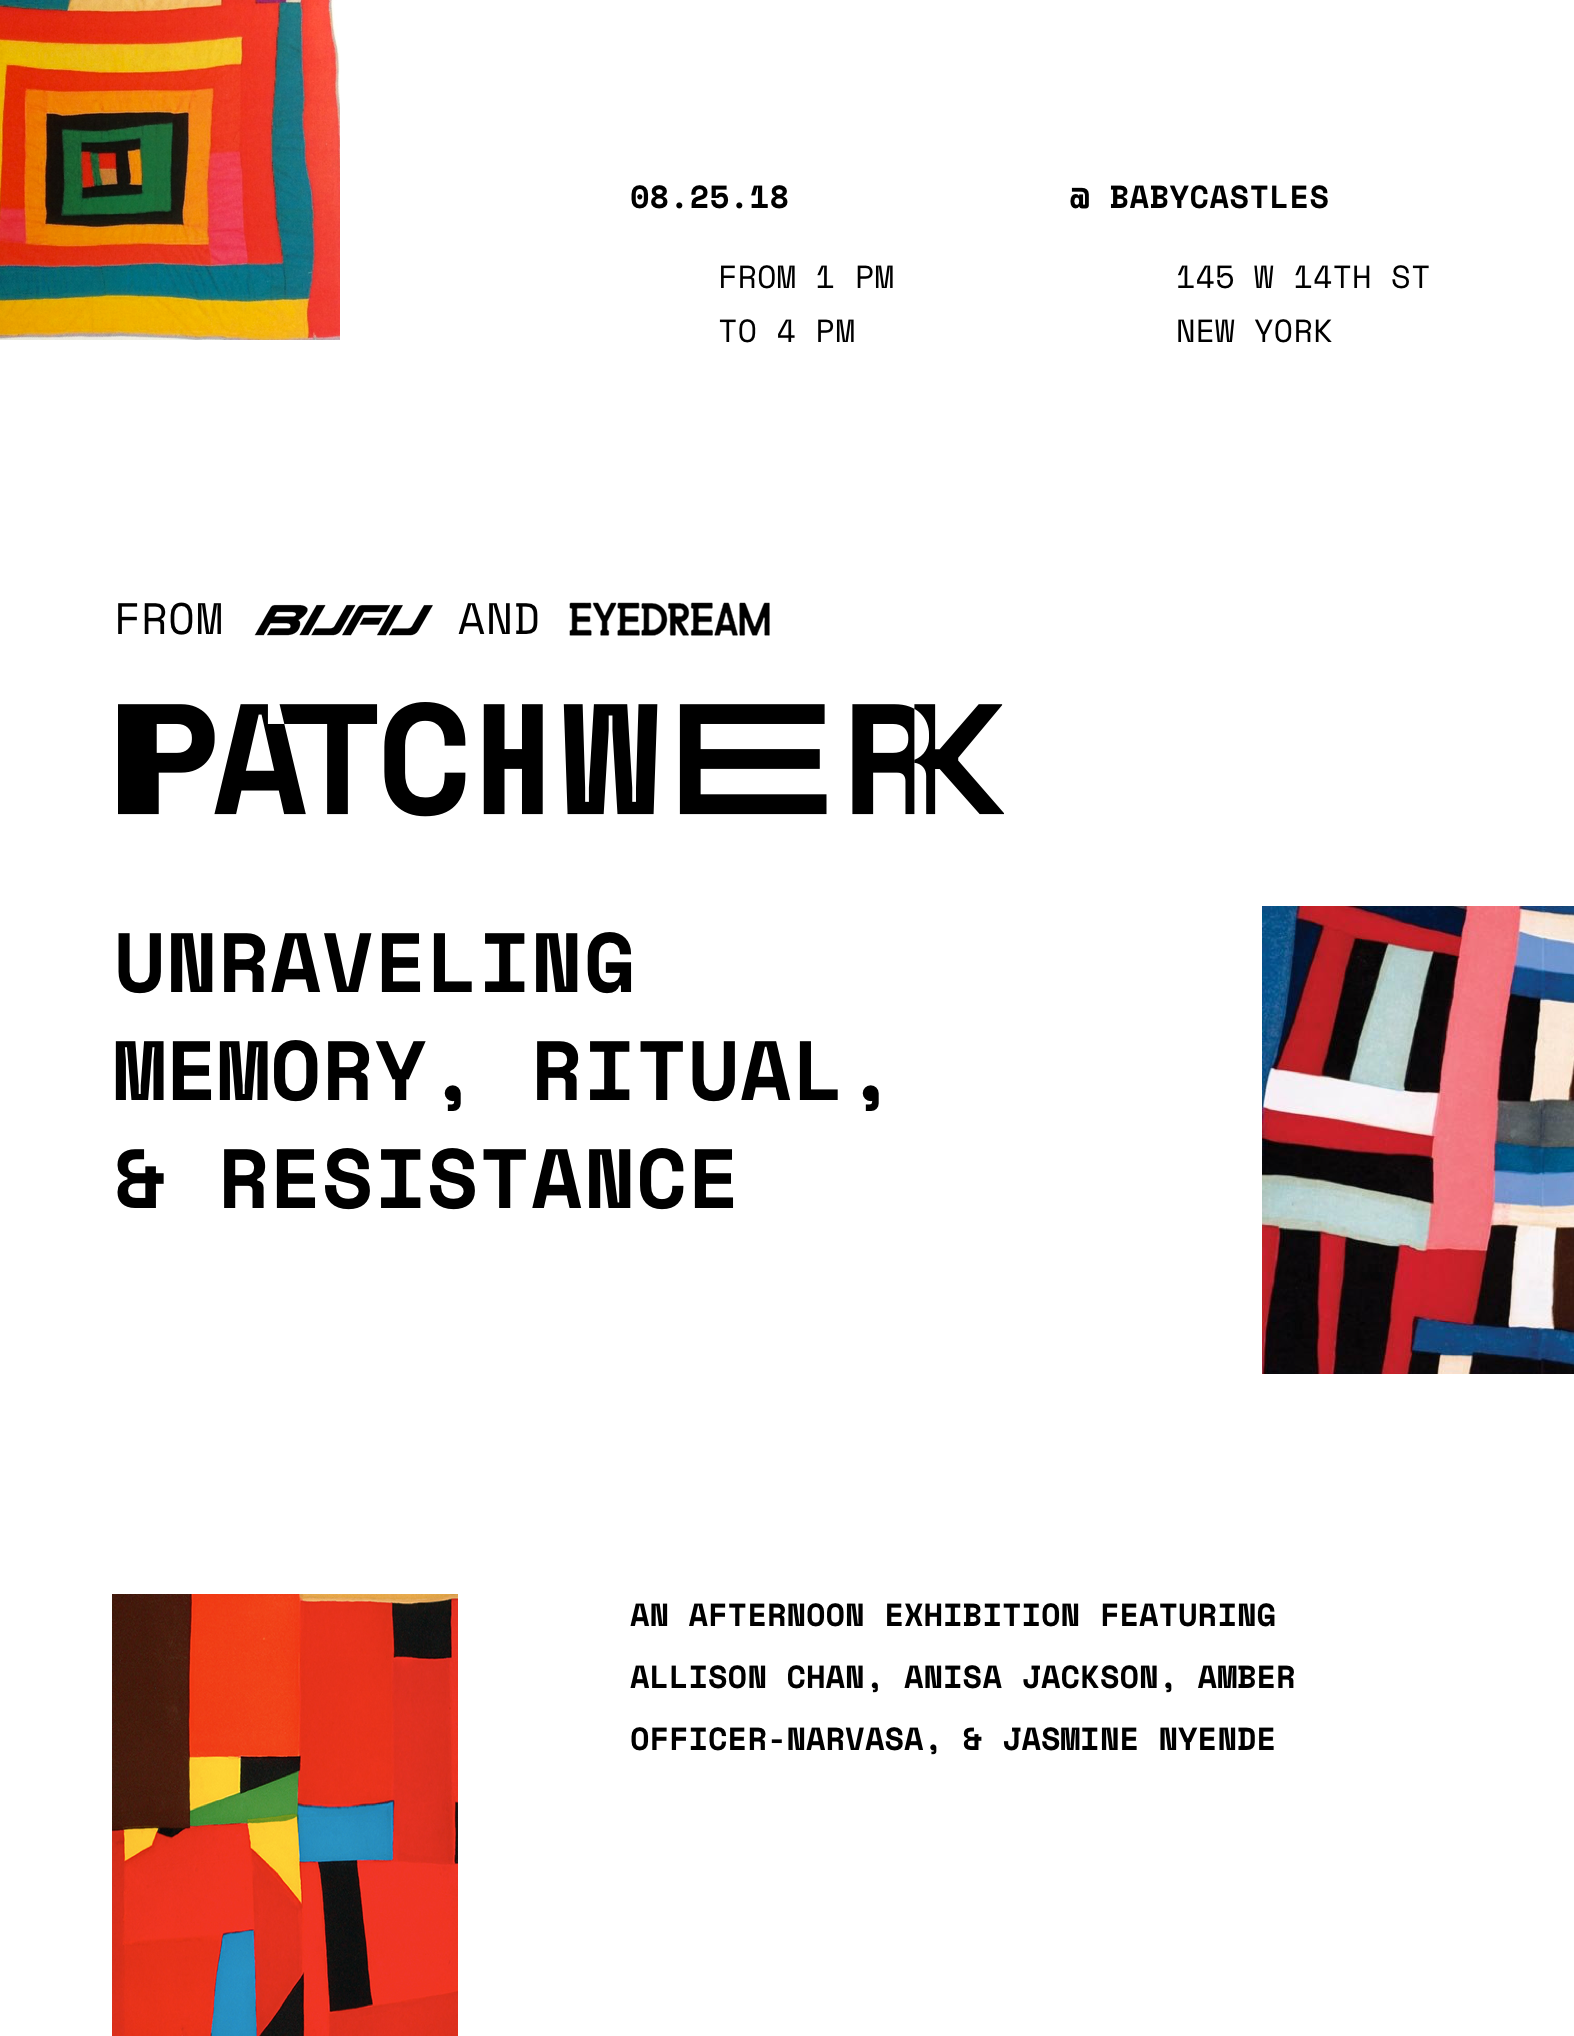 PATCHWERK: Unraveling Memory, Ritual, & Resistance - PATCHWERK☁️☁️☁️☁️☁️☁️☁️☁️☁️☁️☁️☁️☁️☁️☁️☁️☁️☁️☁️☁️☁️☁️☁️☁️Unraveling Memory, Ritual, & Resistance☁️☁️☁️☁️☁️☁️☁️☁️☁️☁️☁️☁️☁️☁️☁️☁️☁️☁️☁️☁️☁️☁️☁️☁️@@@ Babycastles☁️☁️☁️☁️☁️☁️☁️☁️☁️☁️☁️☁️☁️☁️☁️☁️☁️☁️☁️☁️☁️☁️☁️☁️INSTALLATION // WORKSHOP // OPEN SPACEWith Eyedream Residents Cohort 3Allison Chan, Anisa Jackson, Amber Officer-Narvasa and Jasmine Nyende1PM - 4PM☁️☁️☁️☁️☁️☁️☁️☁️☁️☁️☁️☁️☁️☁️☁️☁️☁️☁️☁️☁️☁️☁️☁️☁️